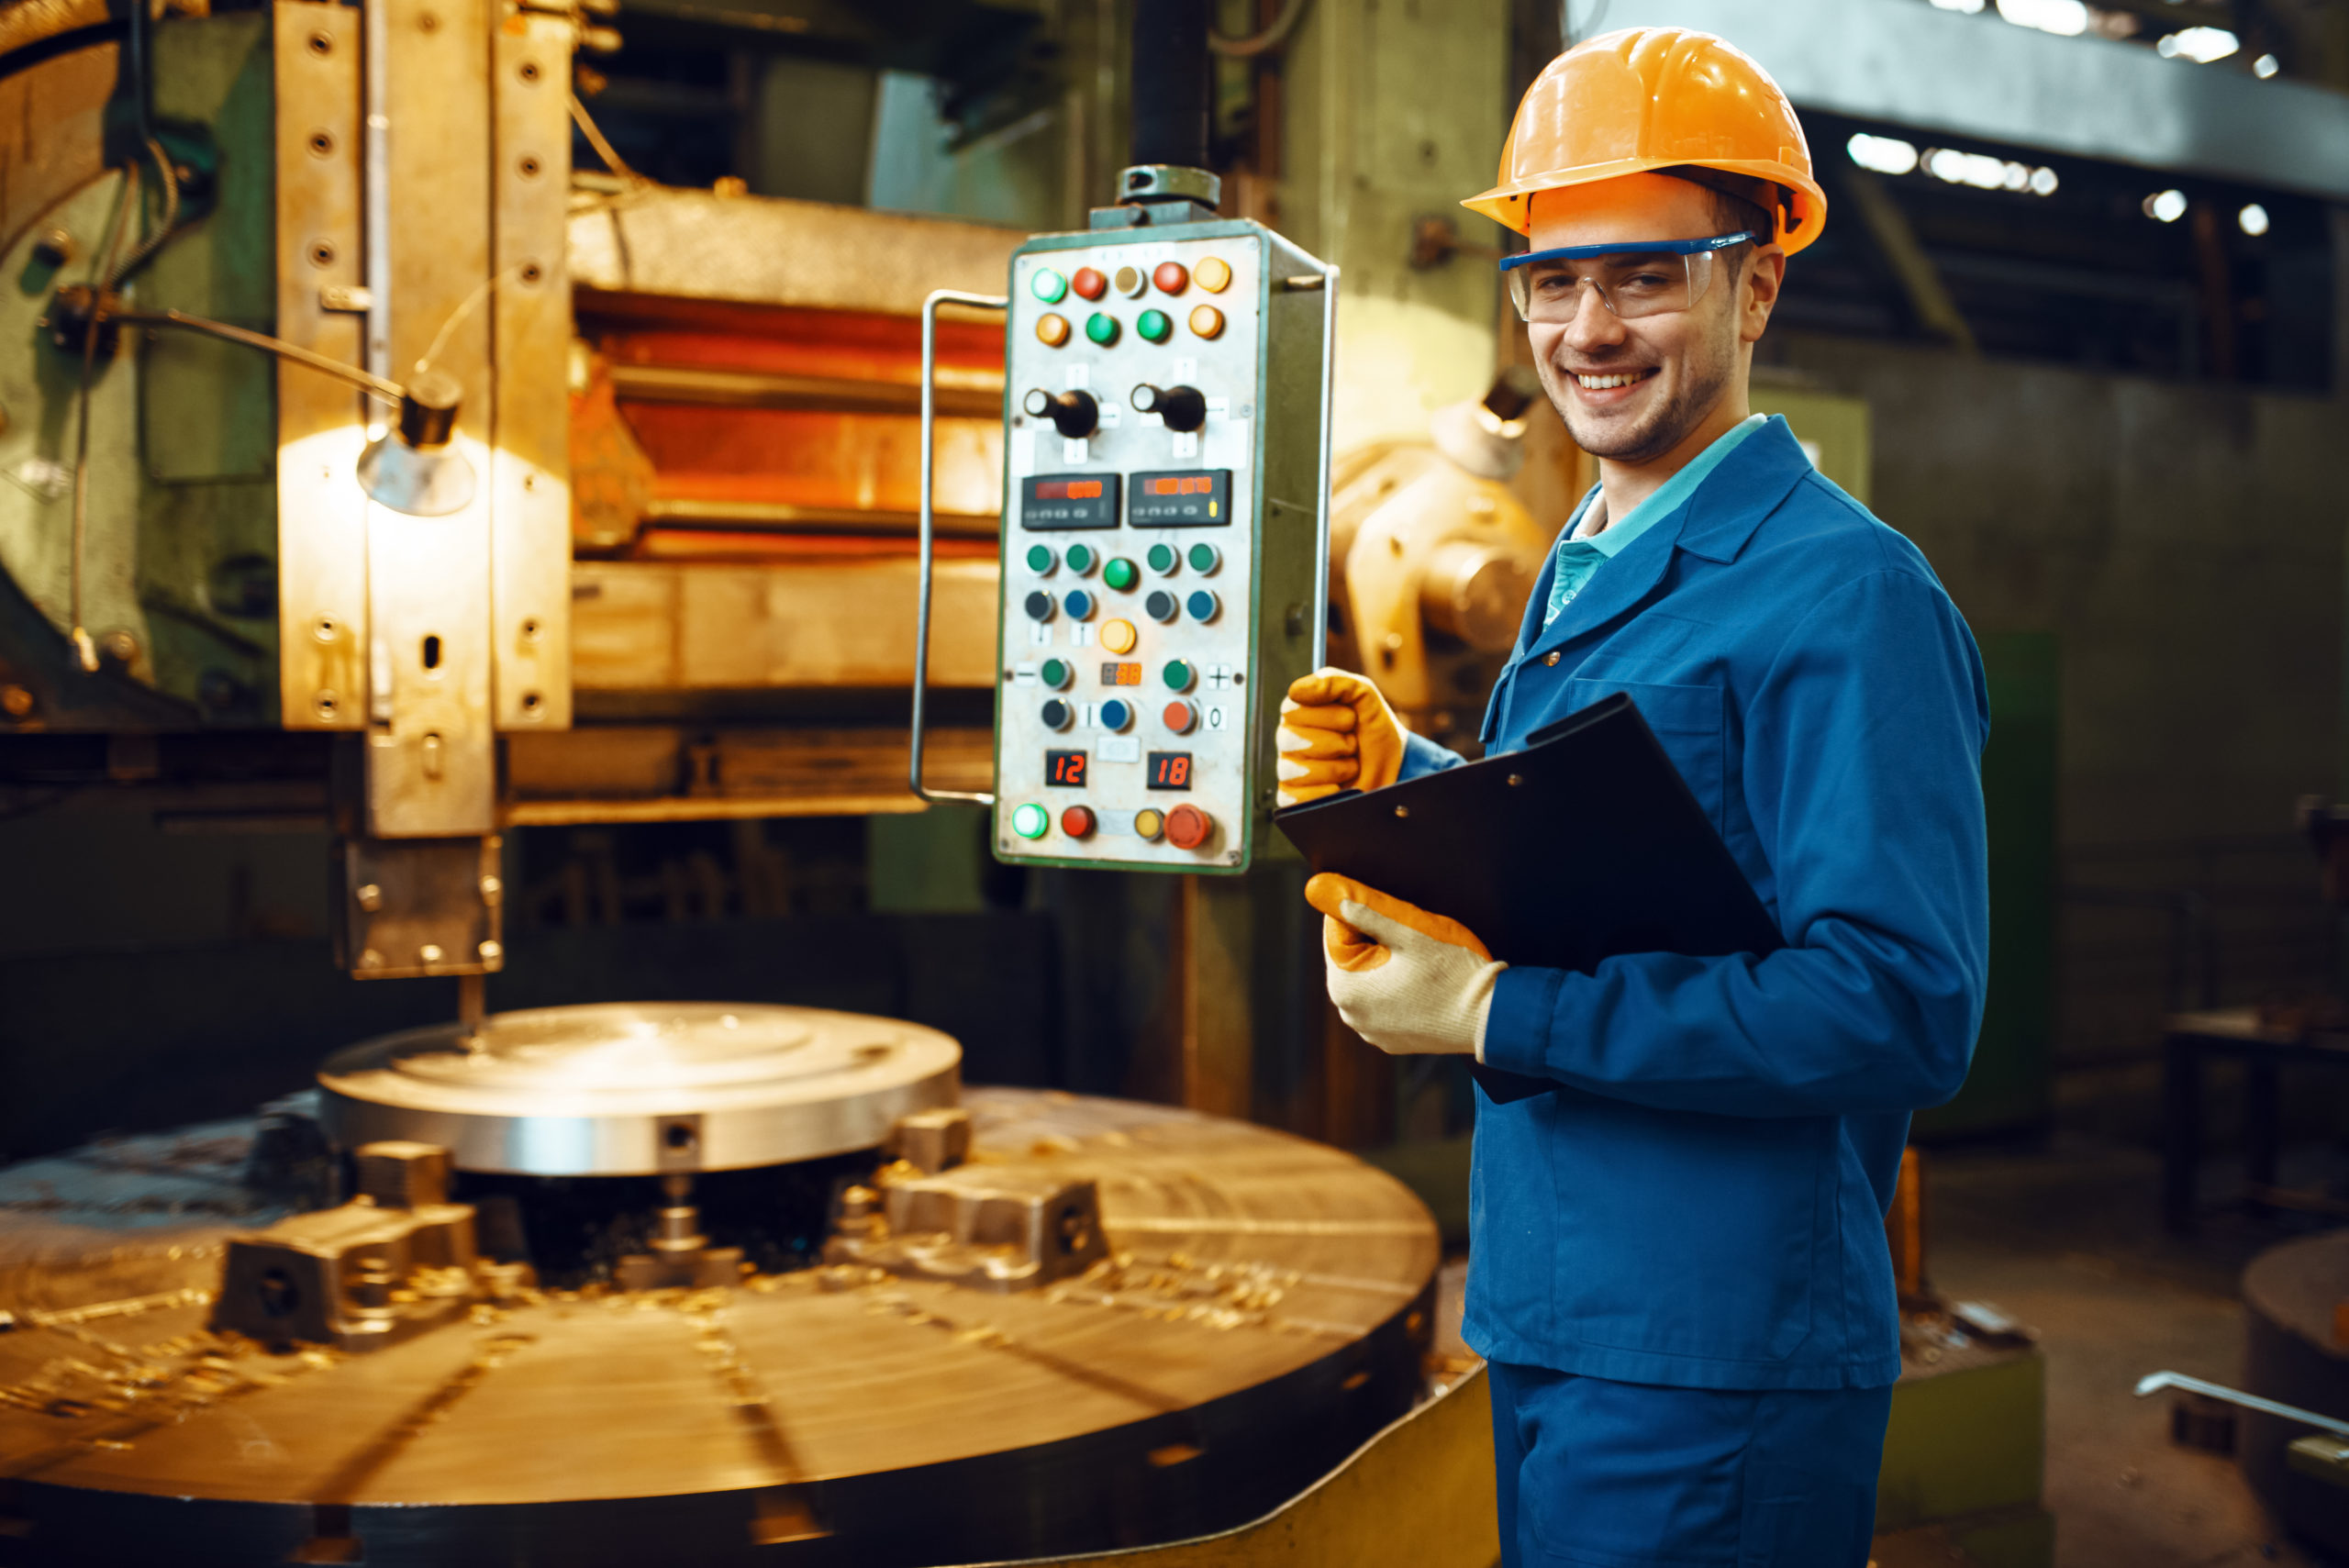 Turner in uniform and helmet stanging at the automated lathe, factory. Industrial production, metalwork engineering, power machines manufacturing